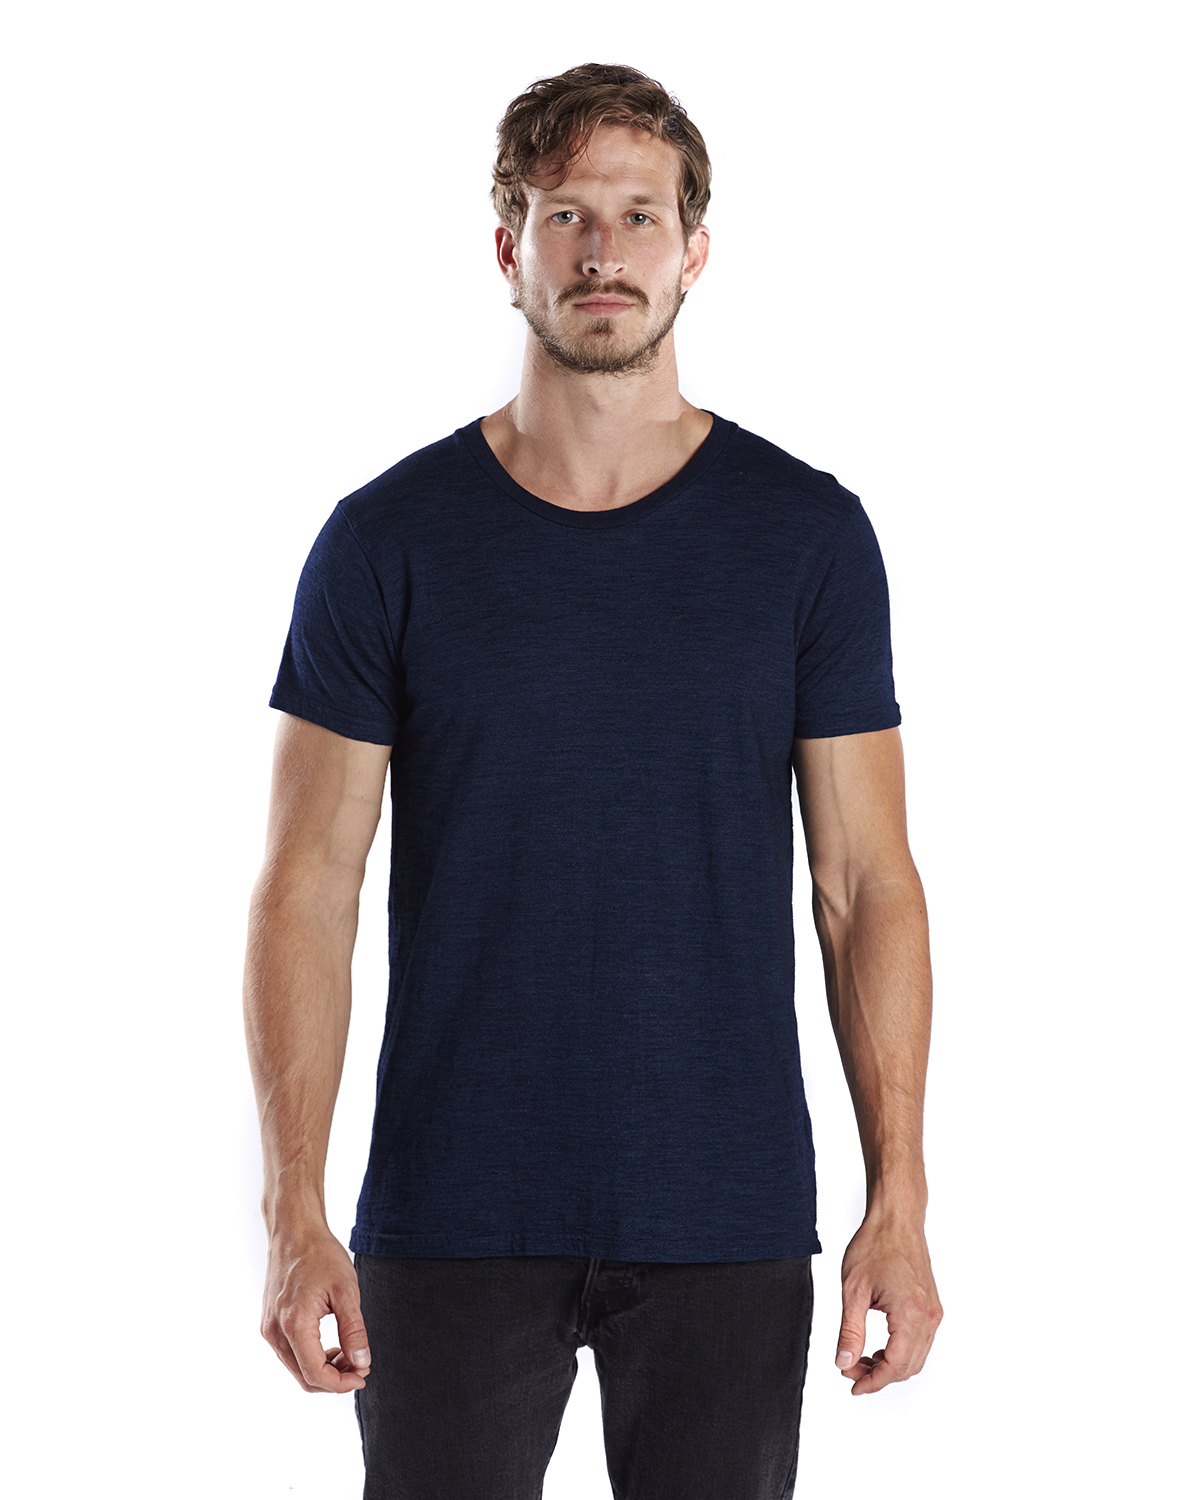 US Blanks US2404 - Men's 6 oz. True Indigo Crew